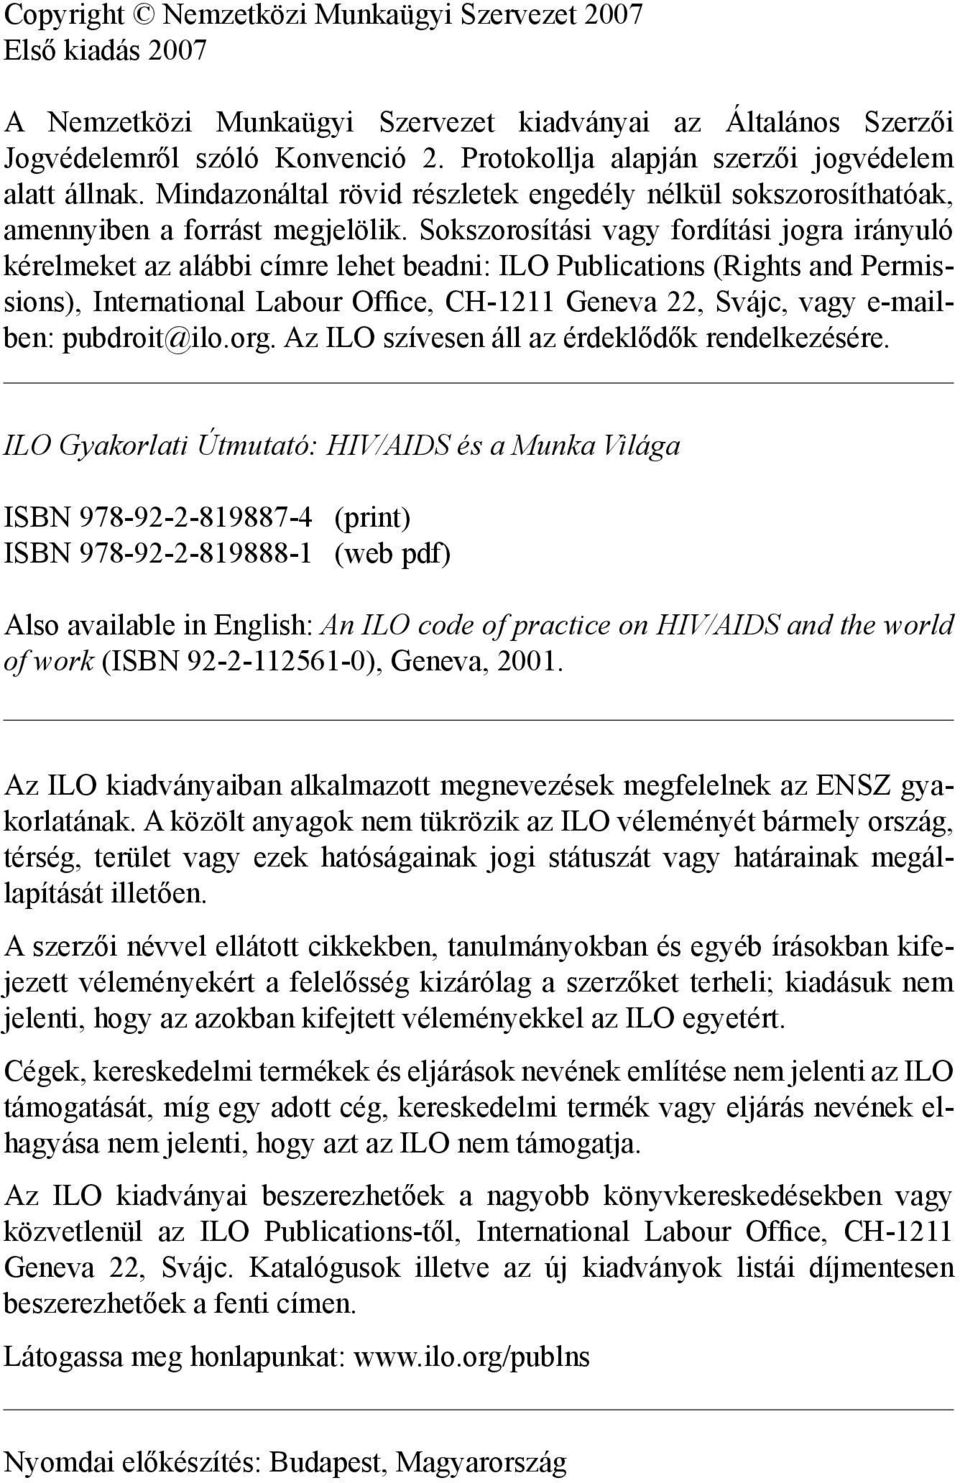 Sokszorosítási vagy fordítási jogra irányuló kérelmeket az alábbi címre lehet beadni: ILO Publications (Rights and Permissions), International Labour Office, CH1211 Geneva 22, Svájc, vagy emailben: